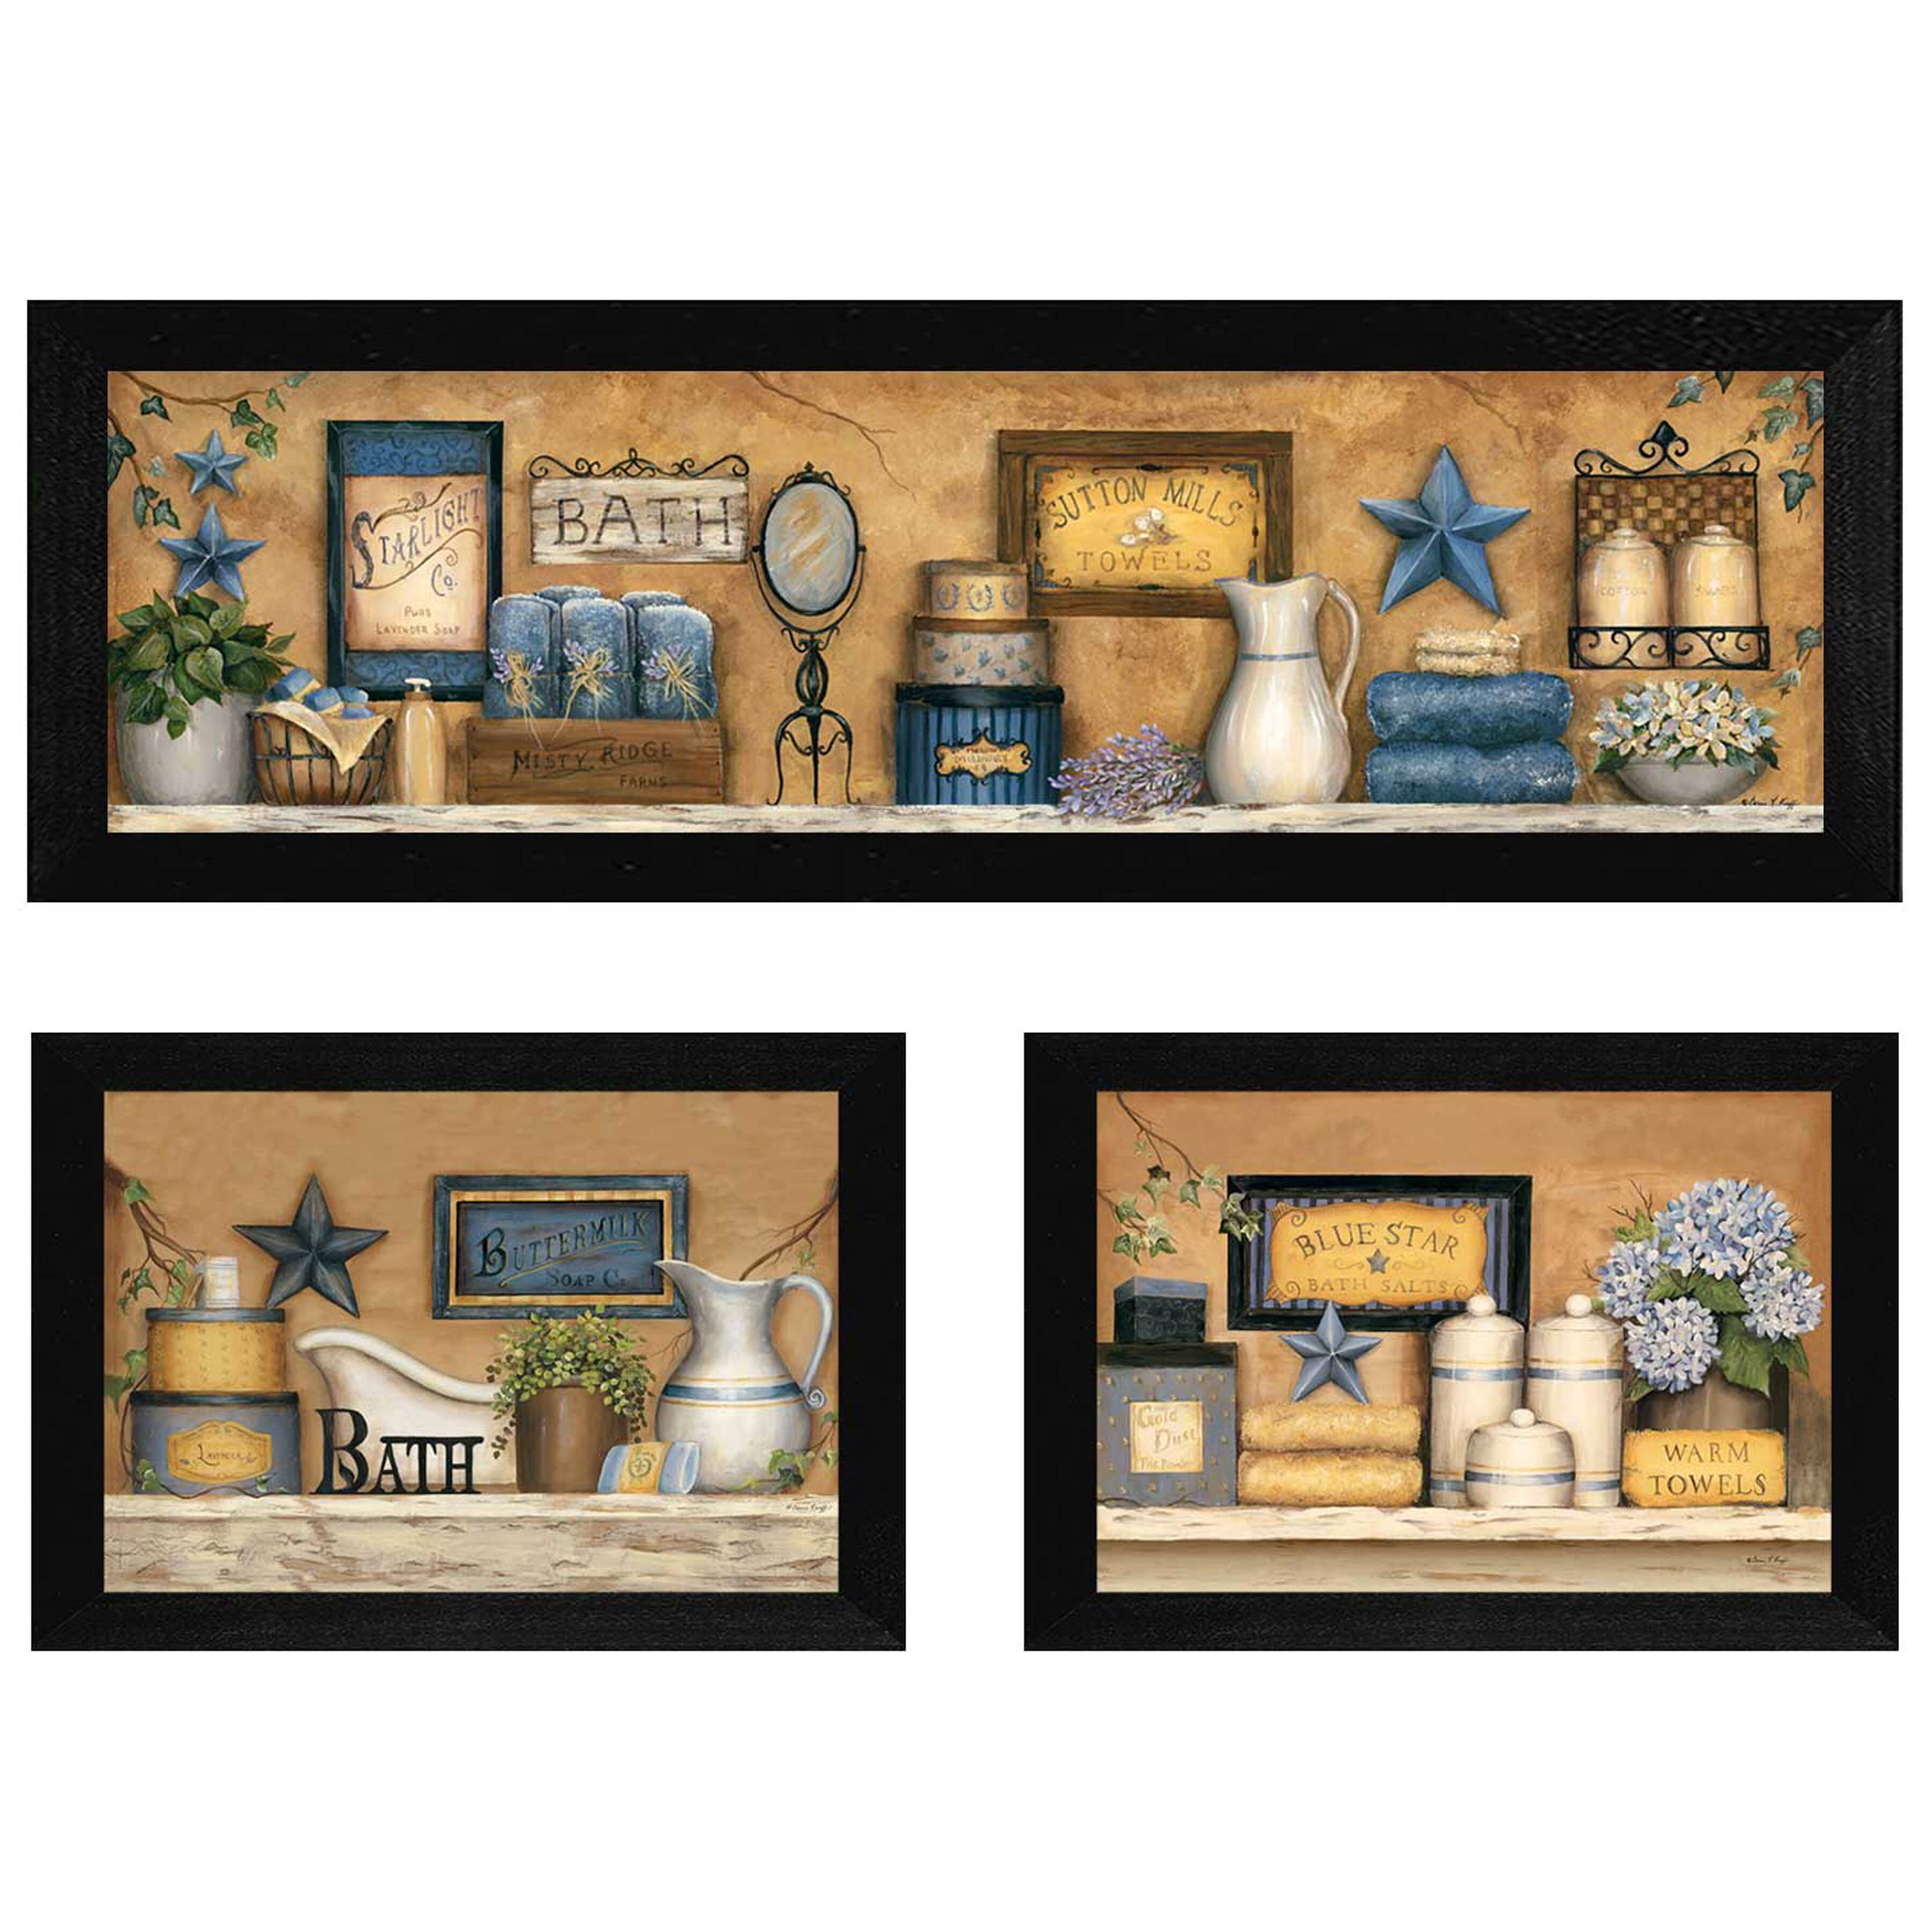 trendy decor 4u 39 bathroom collection iii 39 by carrie knoff 3 piece framed graphic art set. Black Bedroom Furniture Sets. Home Design Ideas